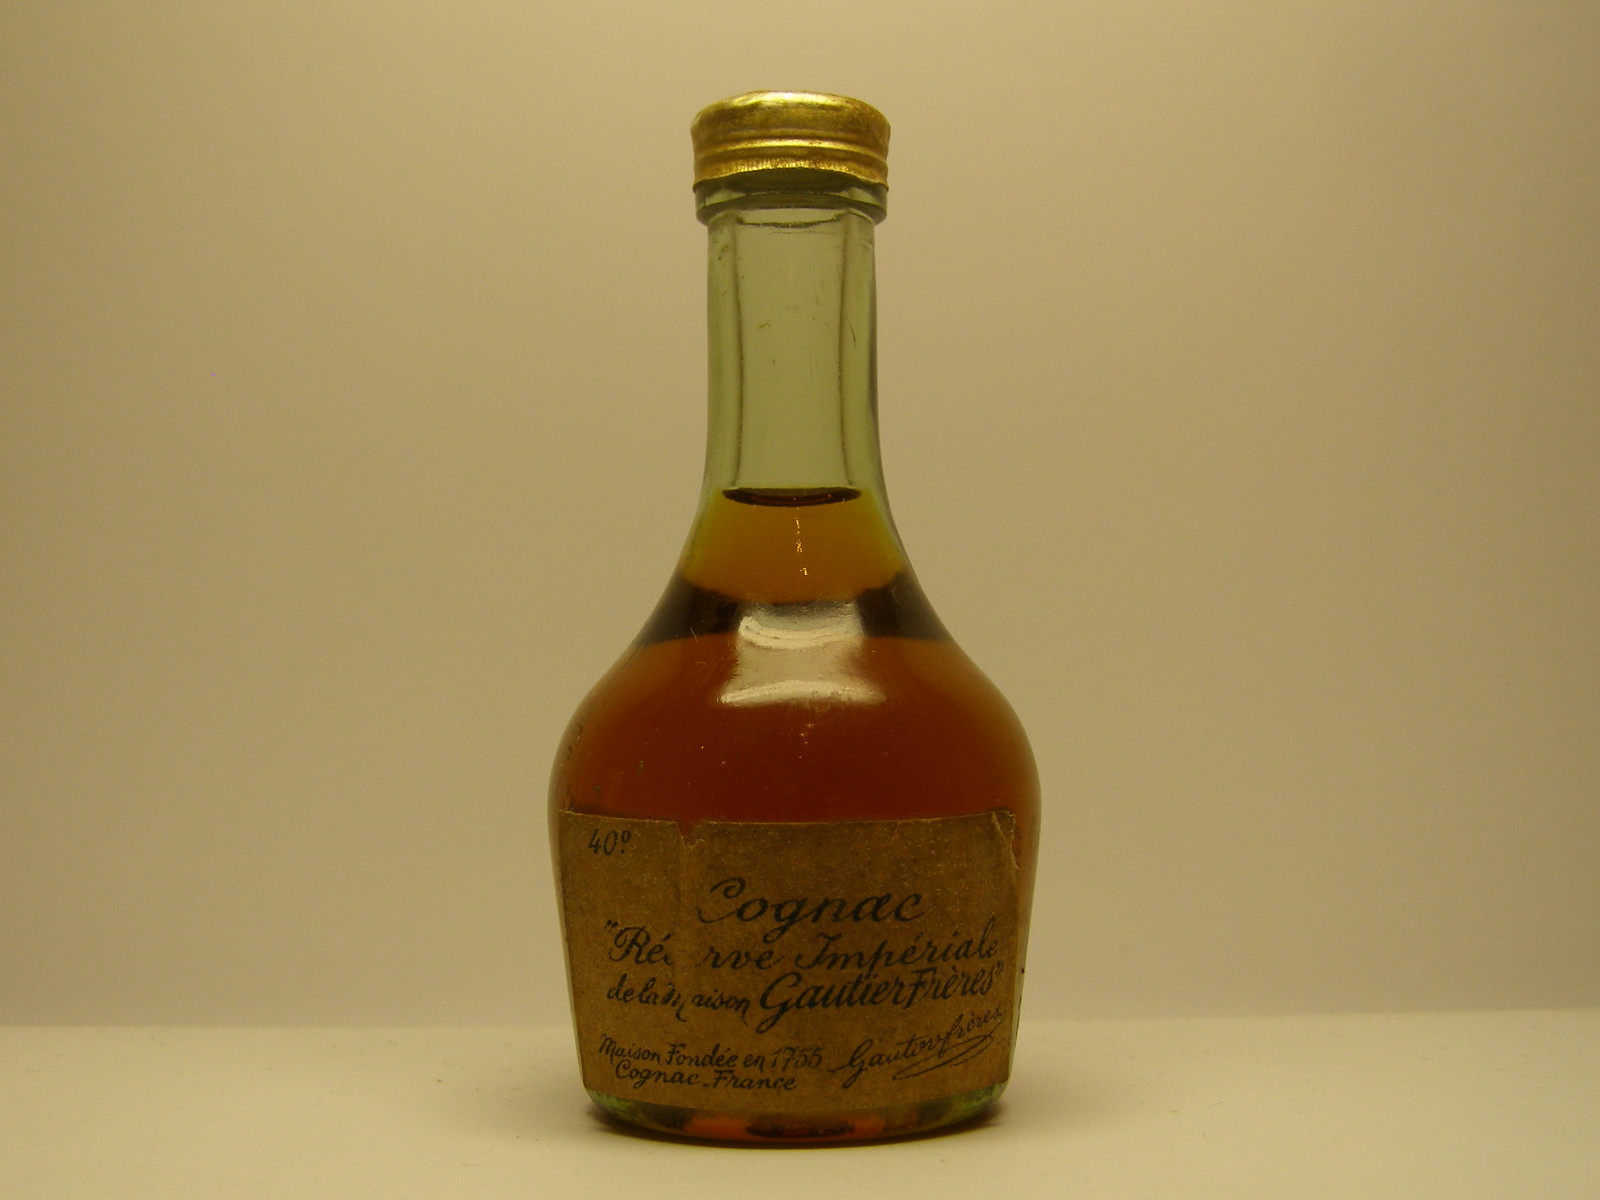 FRERES Reserve Imperial Cognac